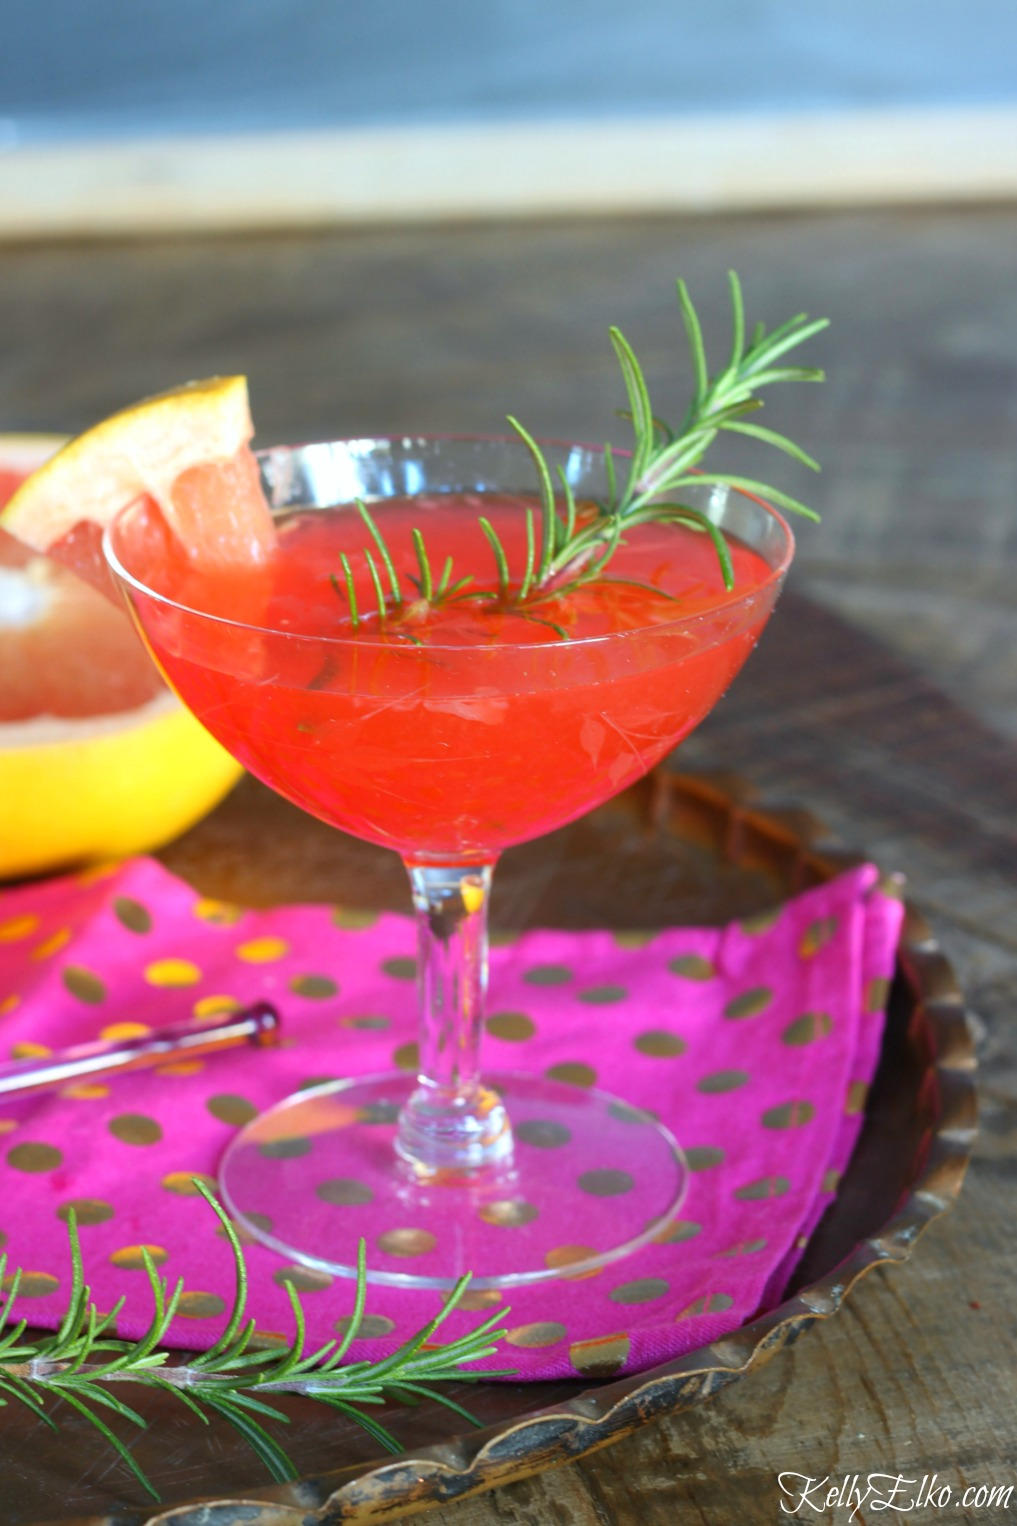 Festive Grapefruit Cocktail kellyelko.com #cocktails #grapefruit #cocktailhour #cocktailrecipes #partyfood #kellyelko